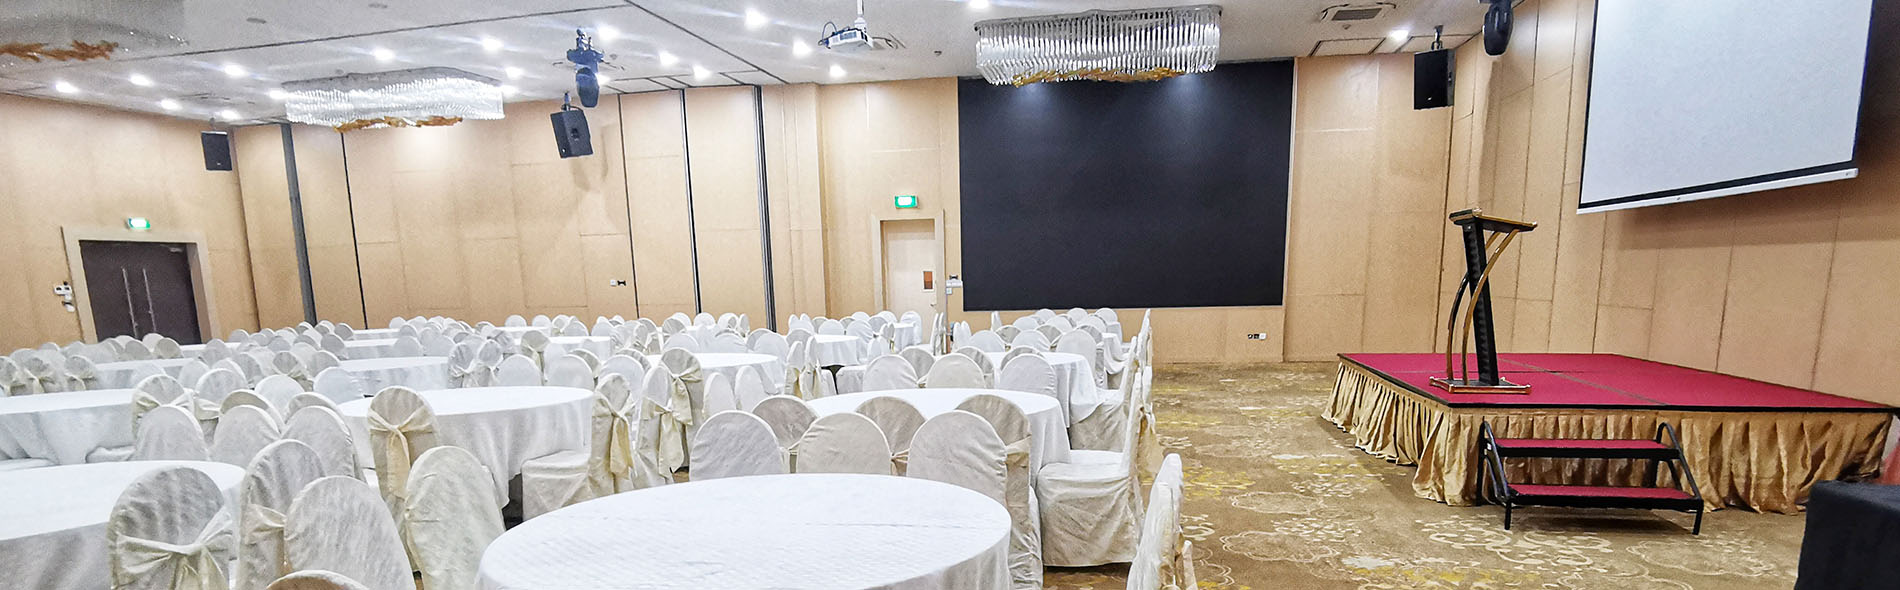 1900x590_MF Function Room